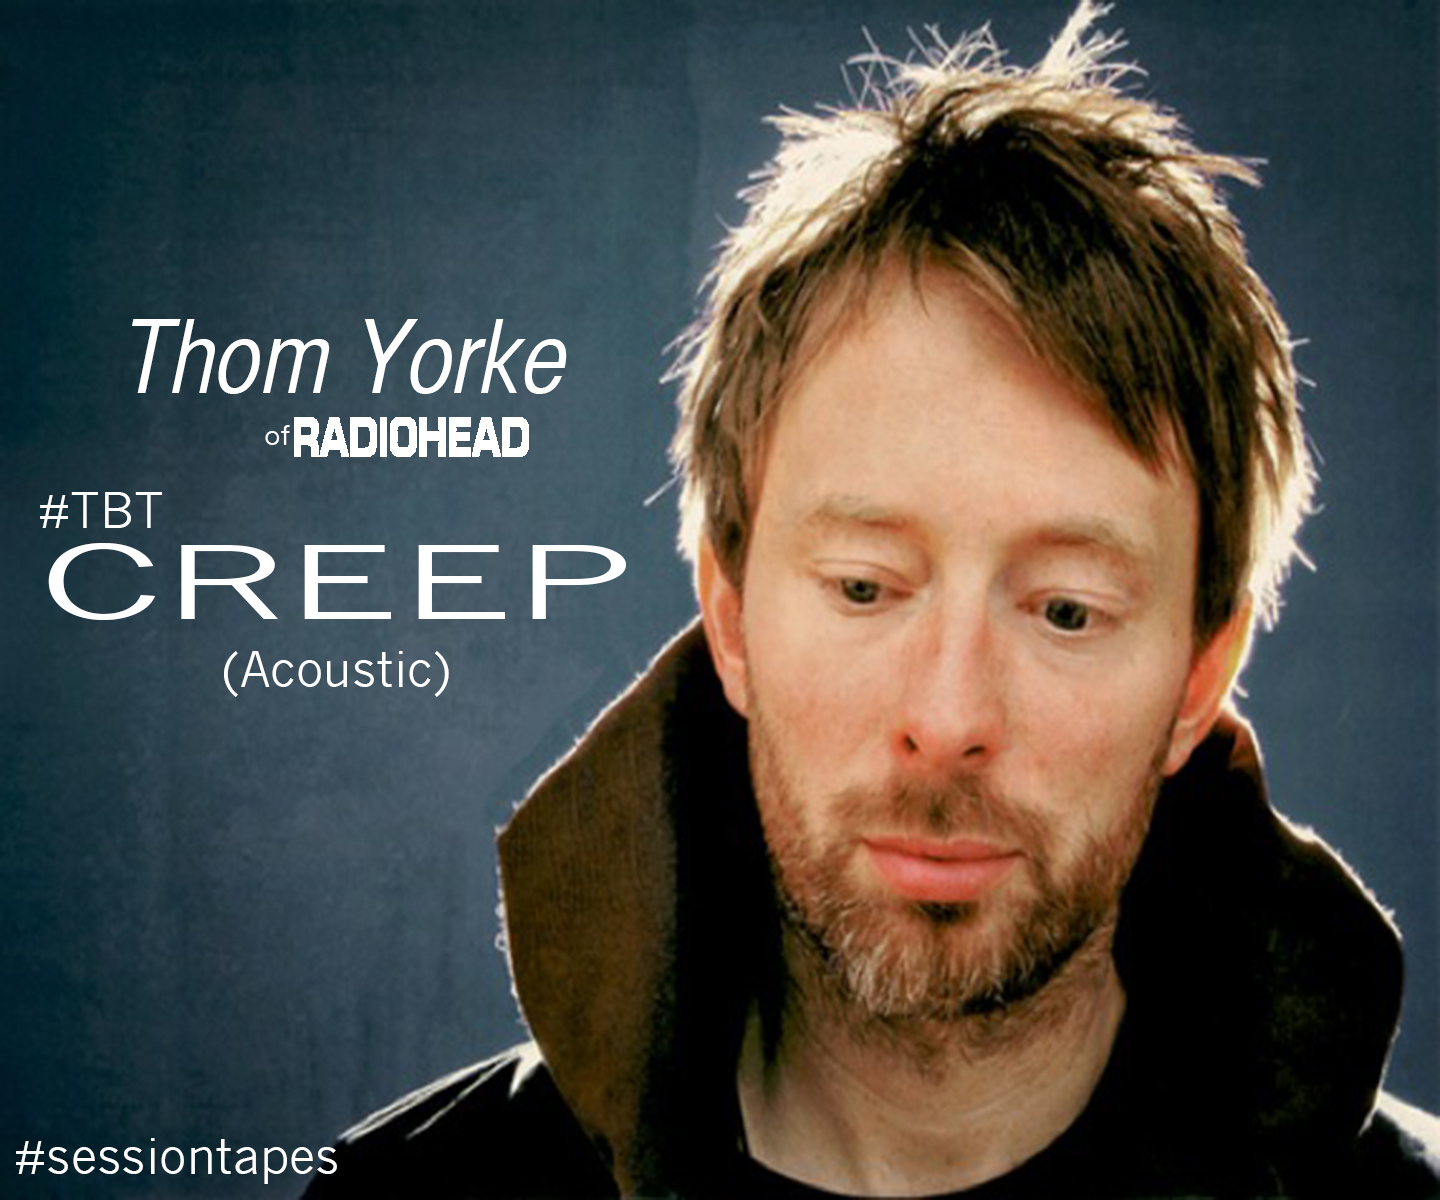 Thom Yorke (Radiohead) – Creep (Acoustic) (Download) #TBT